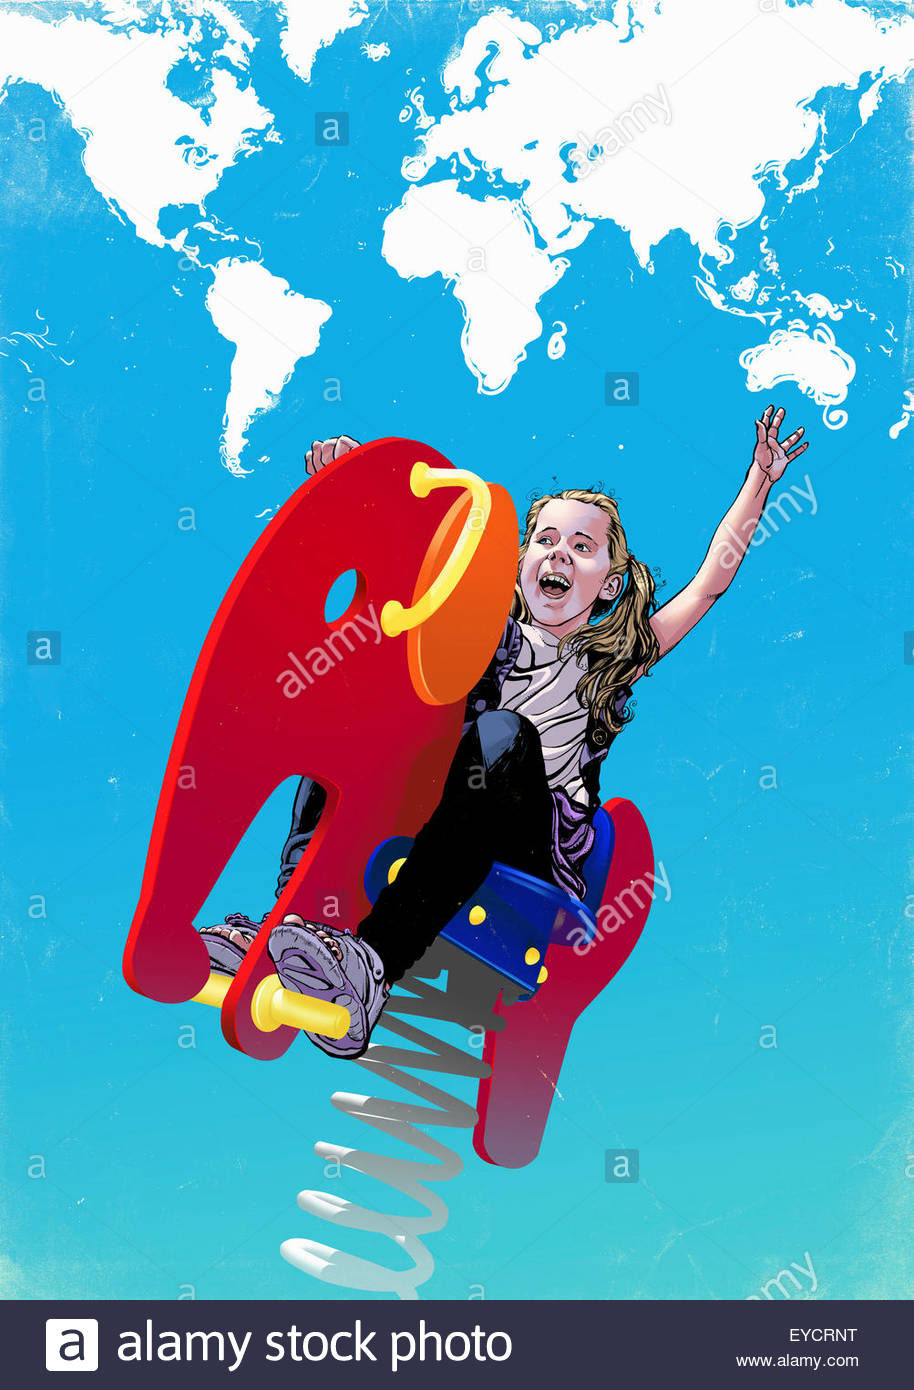 Happy girl playing on spring ride with world map clouds - Stock Image